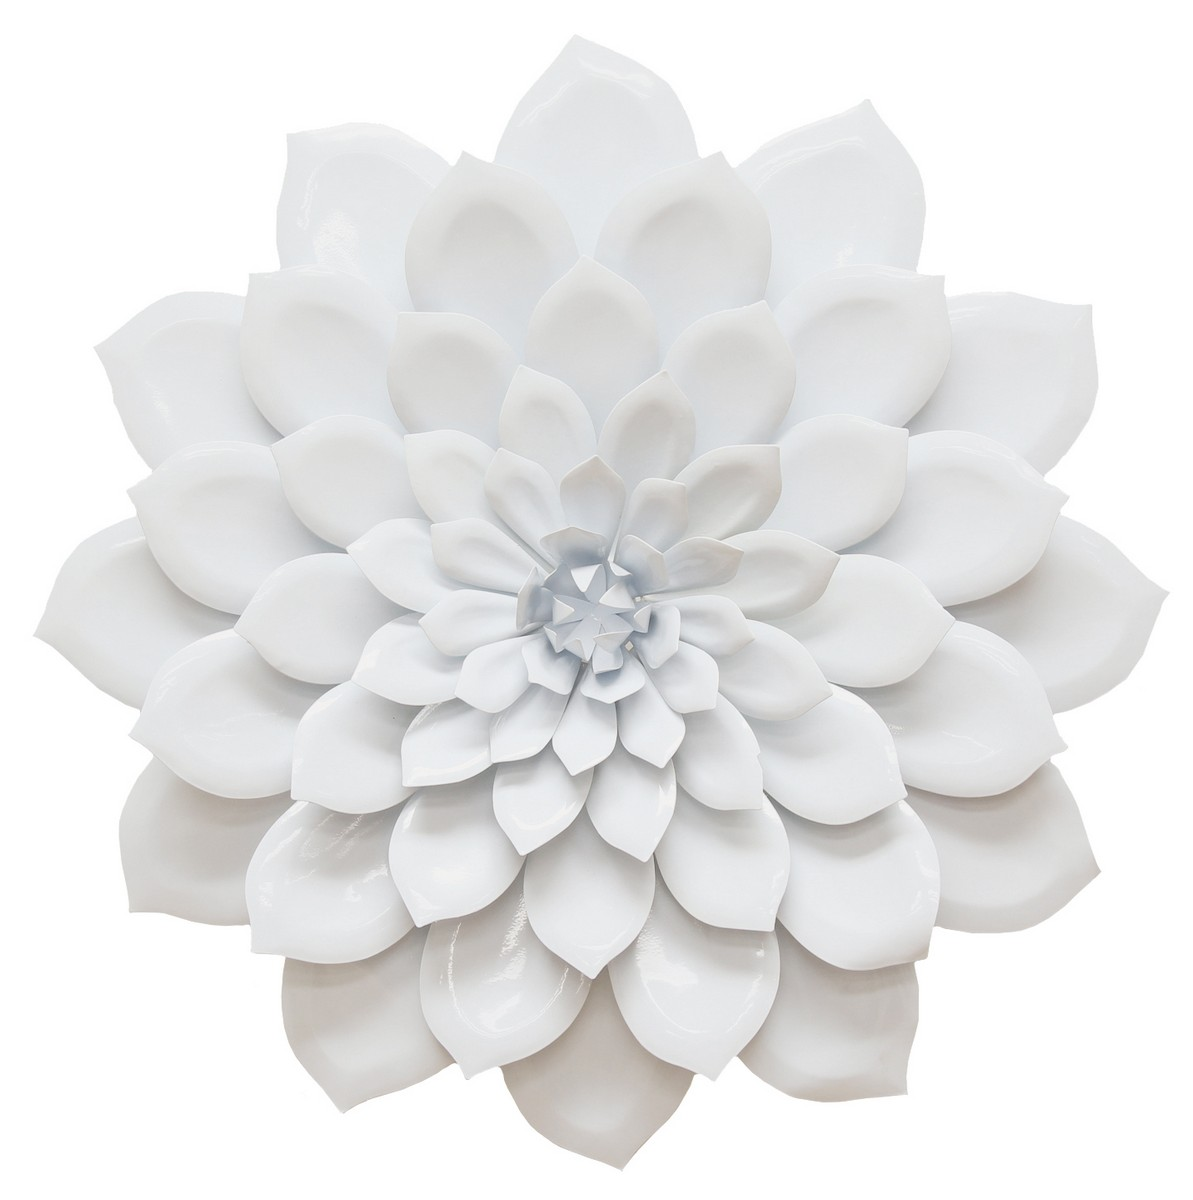 Wall Decor White Flowers : Stratton home decor layered flower wall white